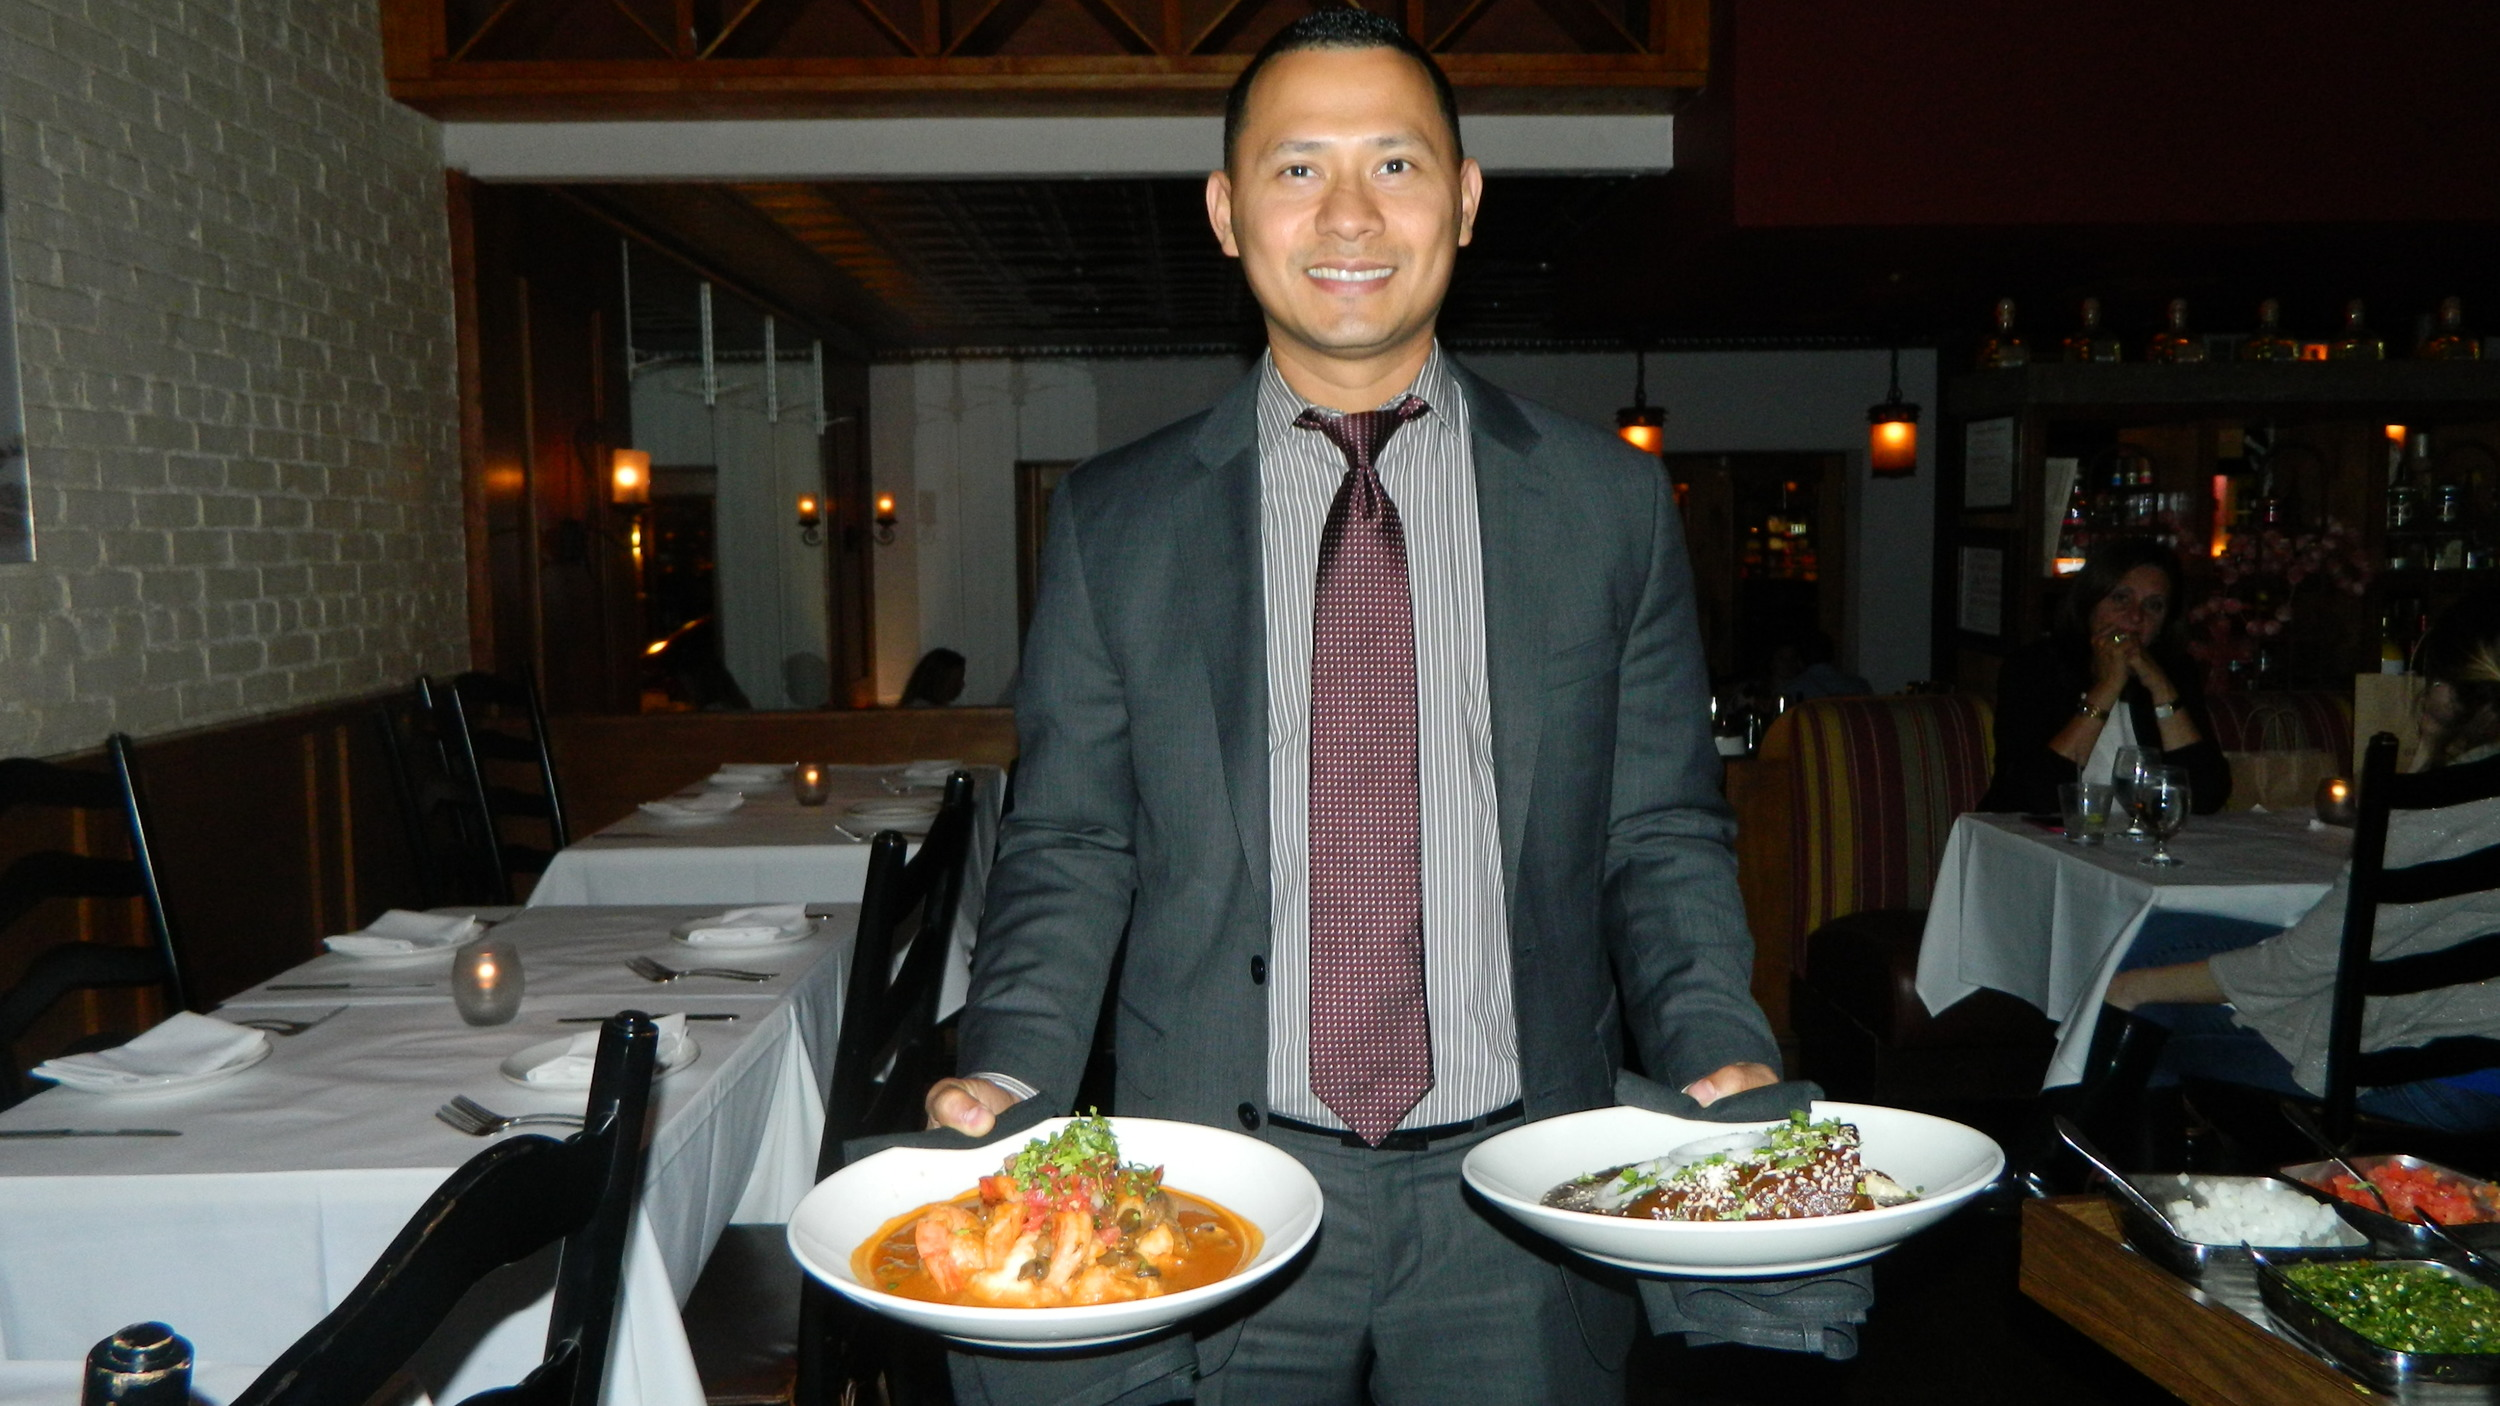 Manager Jose Reyes presents enchilades de mole poblano and camarones ajilo.